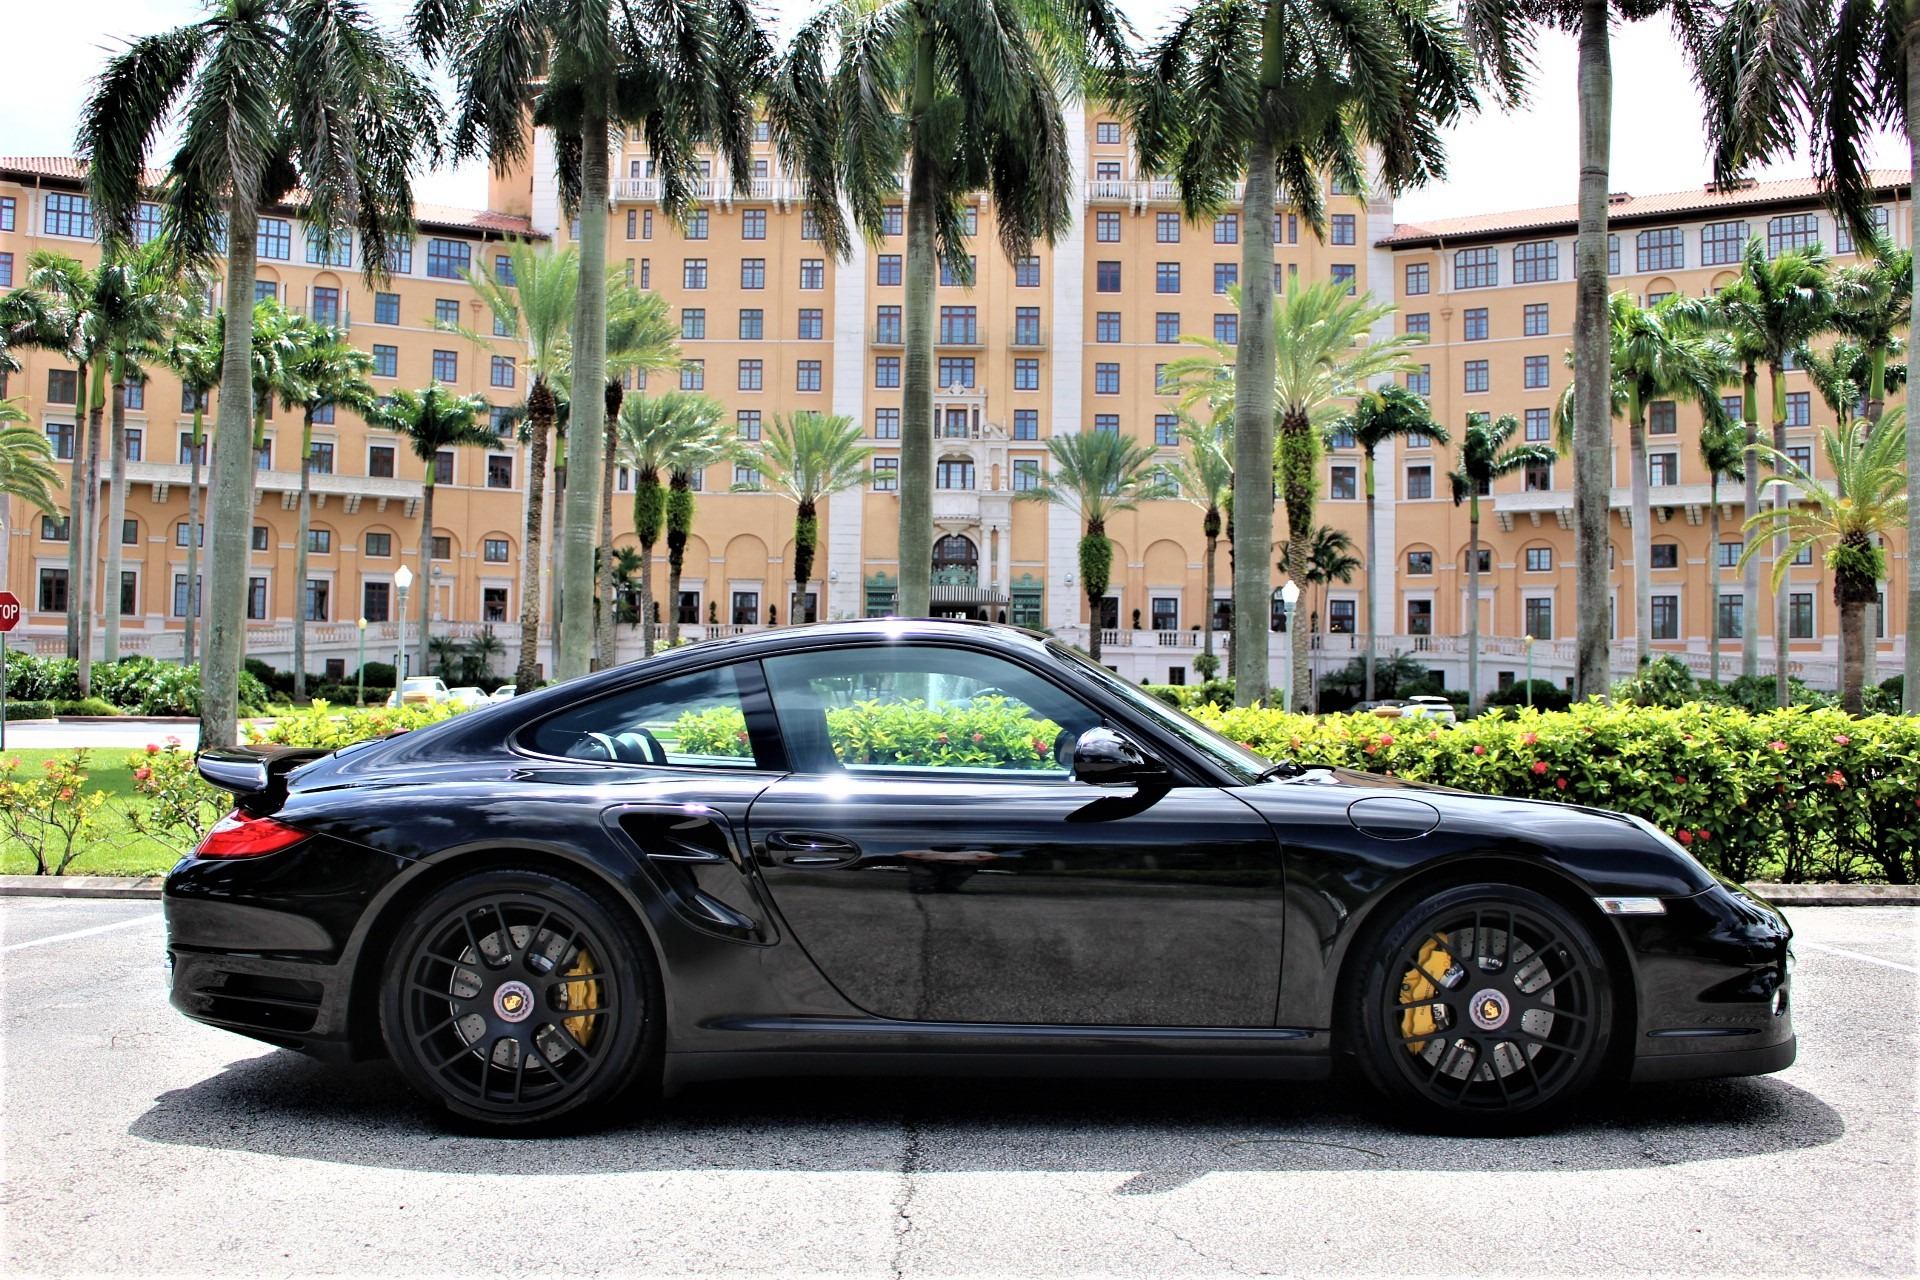 Used 2011 Porsche 911 Turbo S for sale Sold at The Gables Sports Cars in Miami FL 33146 2